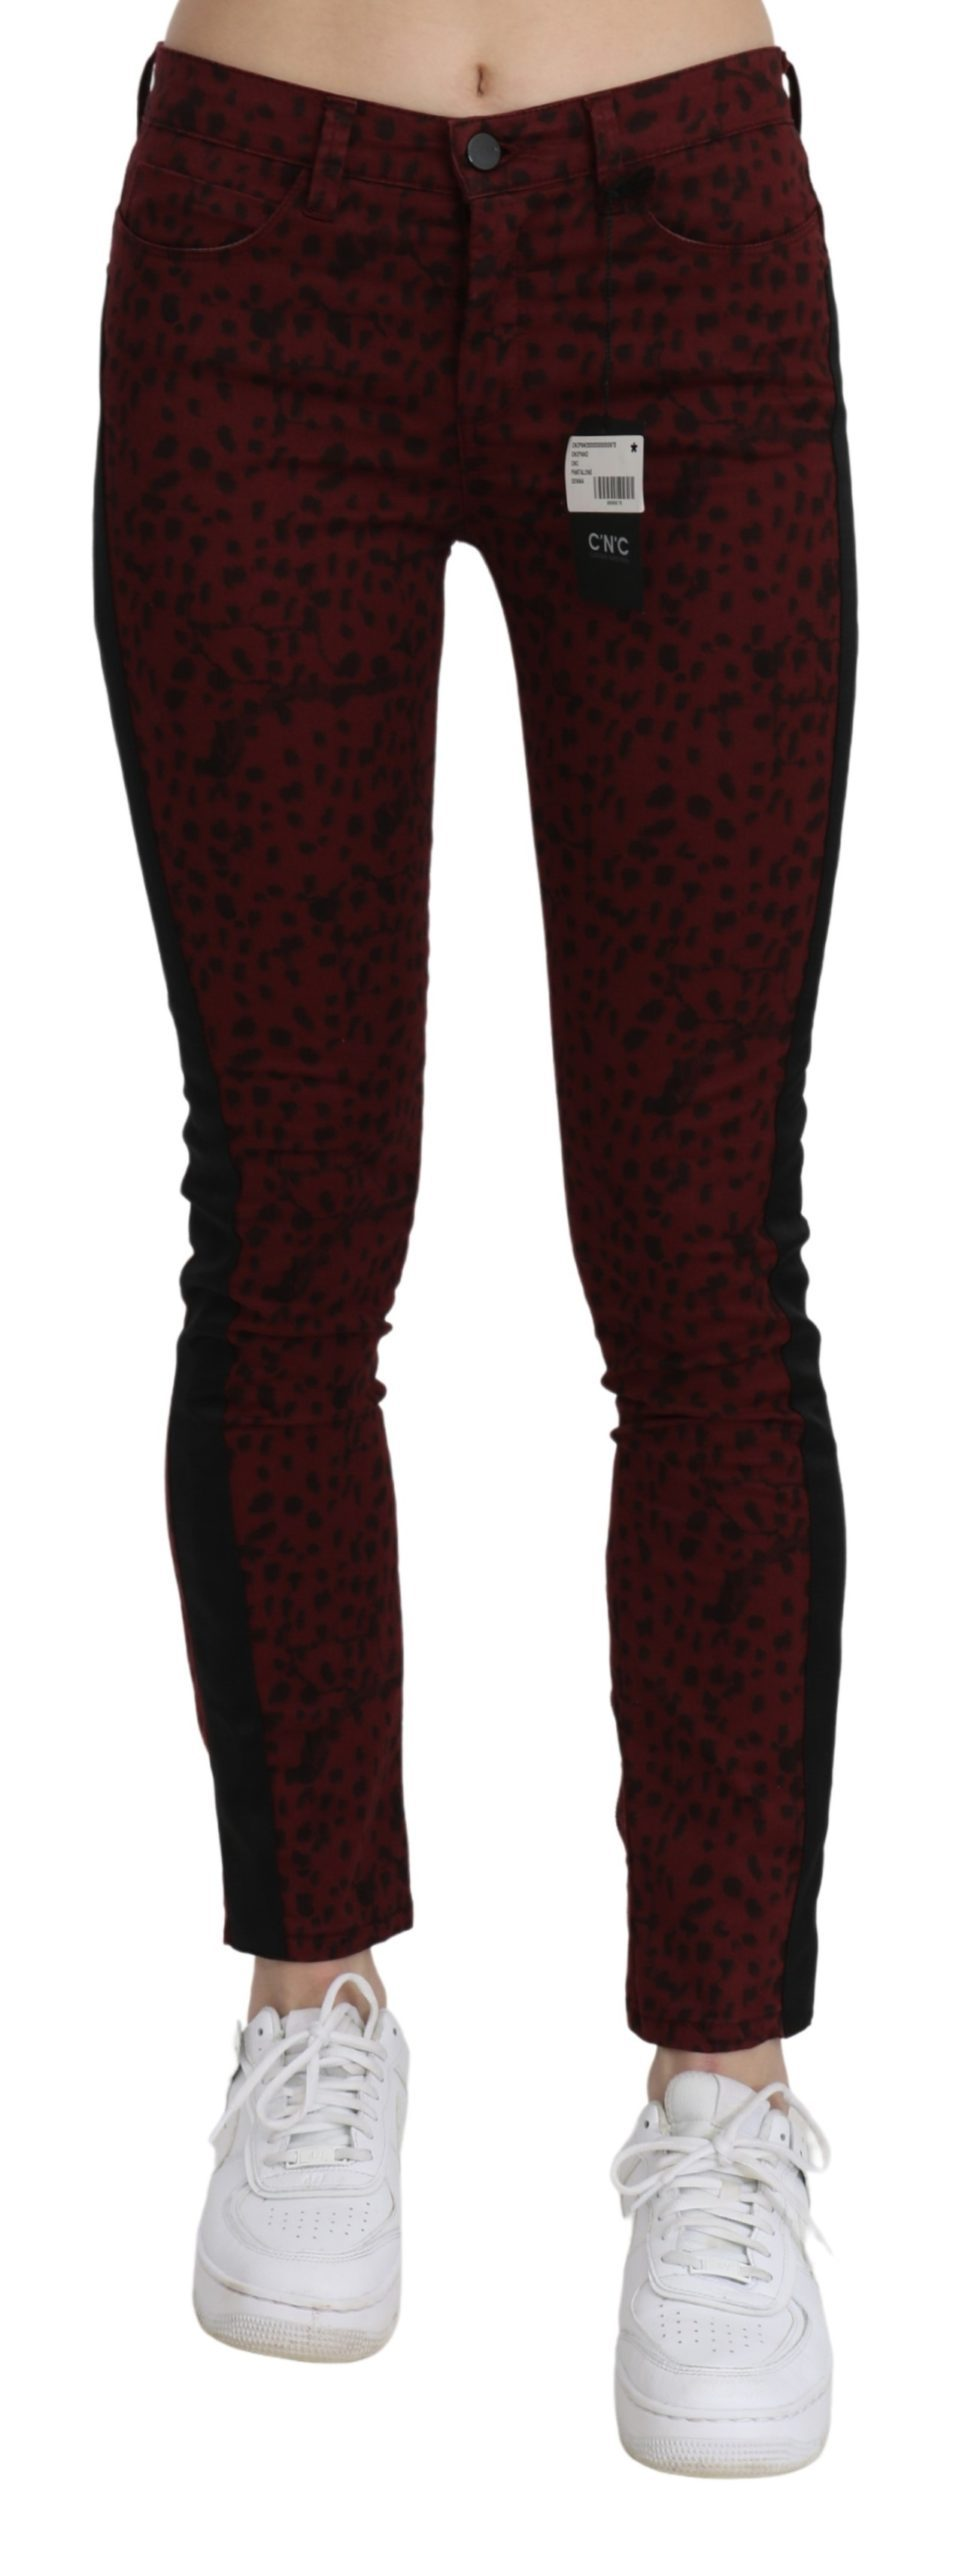 Costume National Women's Mid Waist Slim Fit Cotton Jeans Red PAN70641 - W26